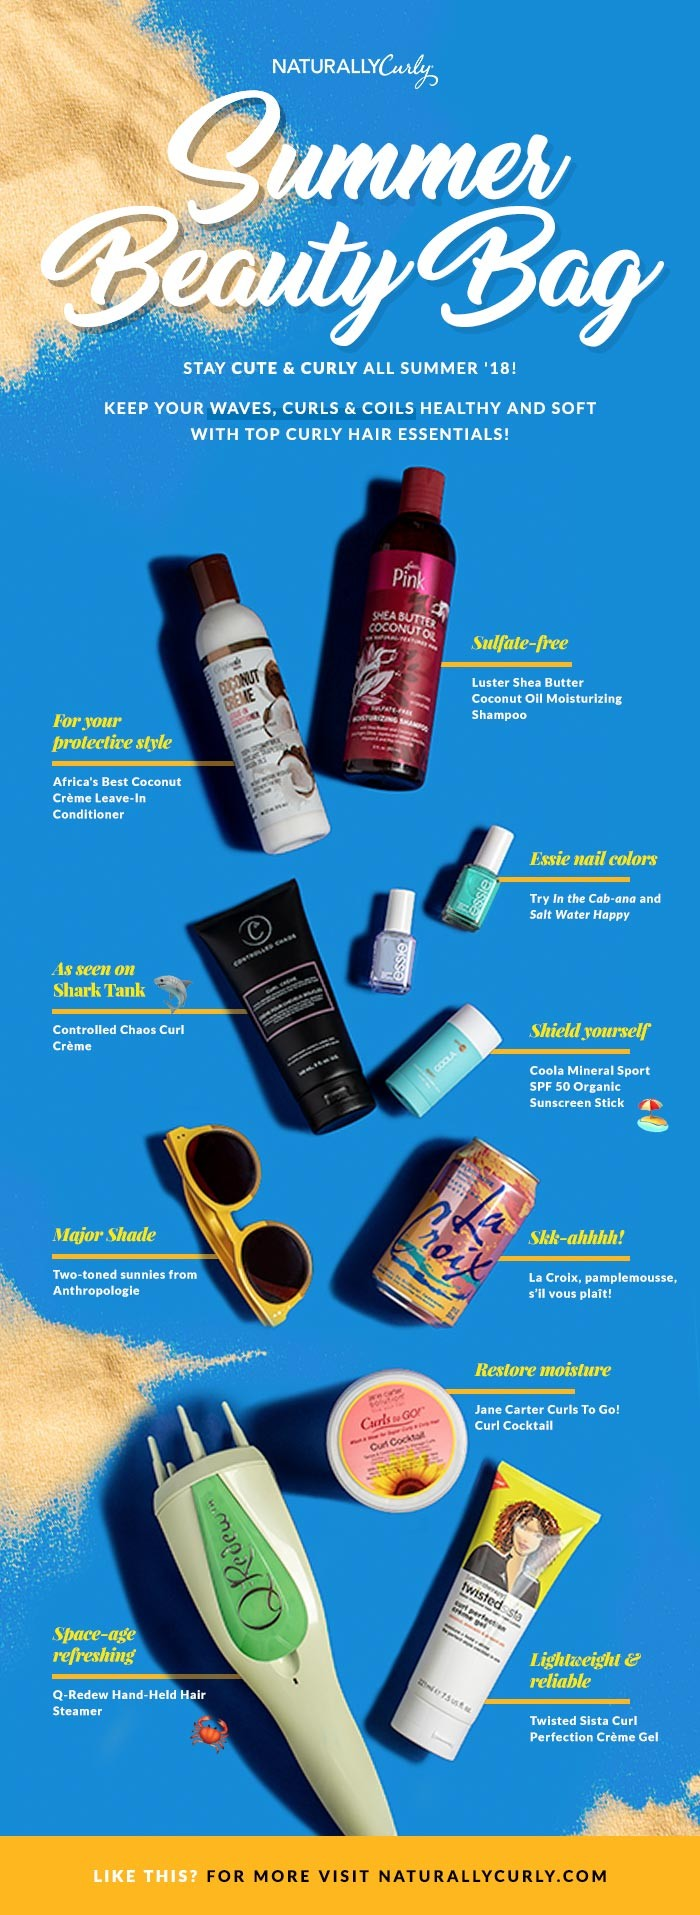 summerbeautybag infographic